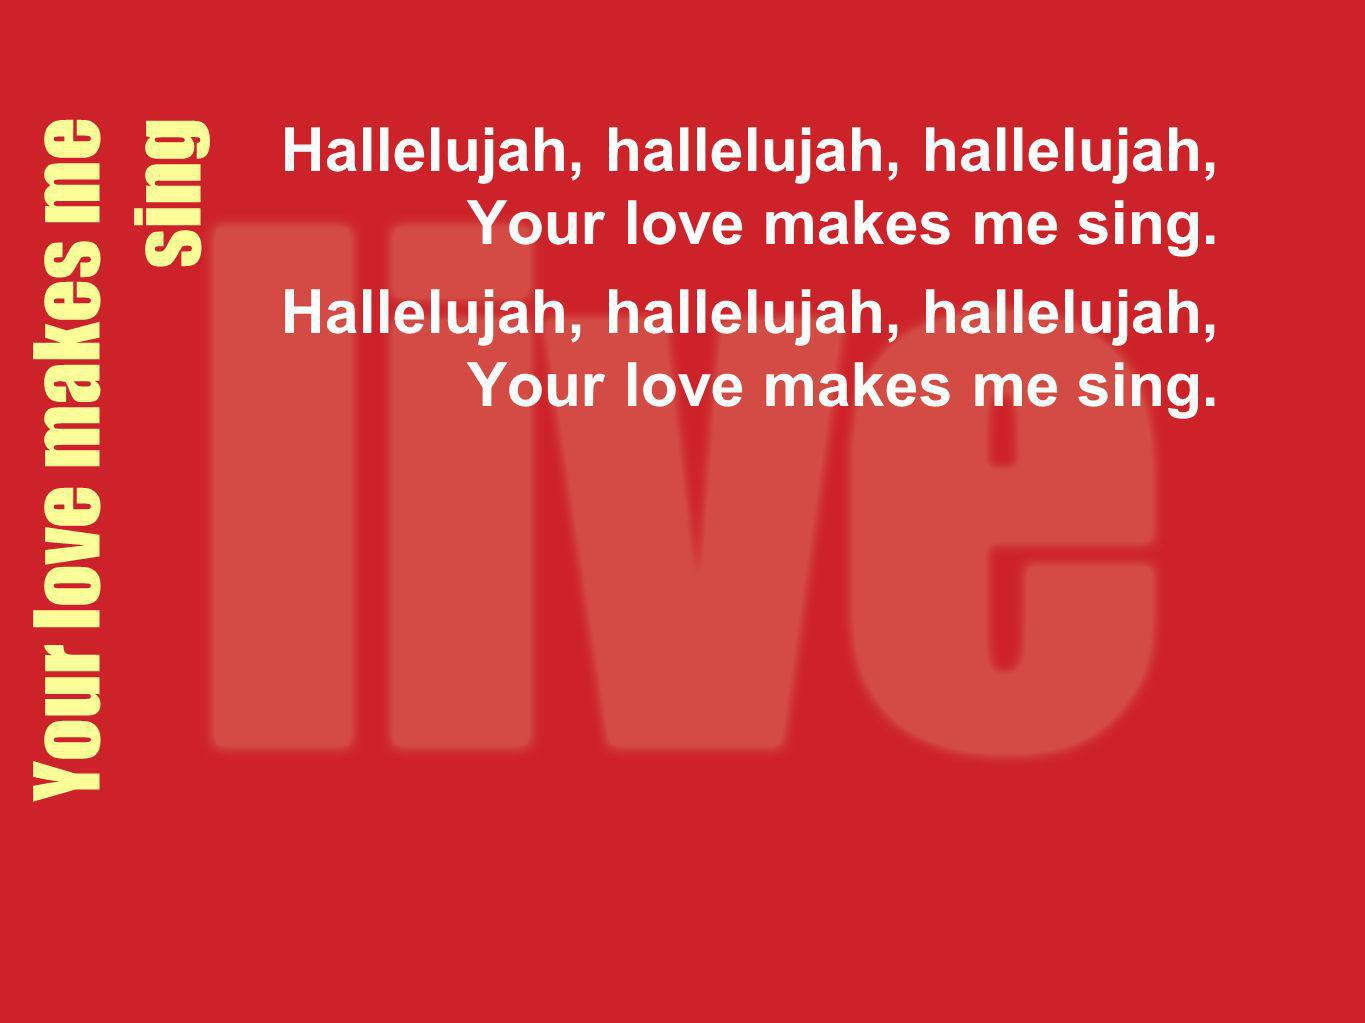 Your love makes me sing Hallelujah, hallelujah, hallelujah, Your love makes me sing.